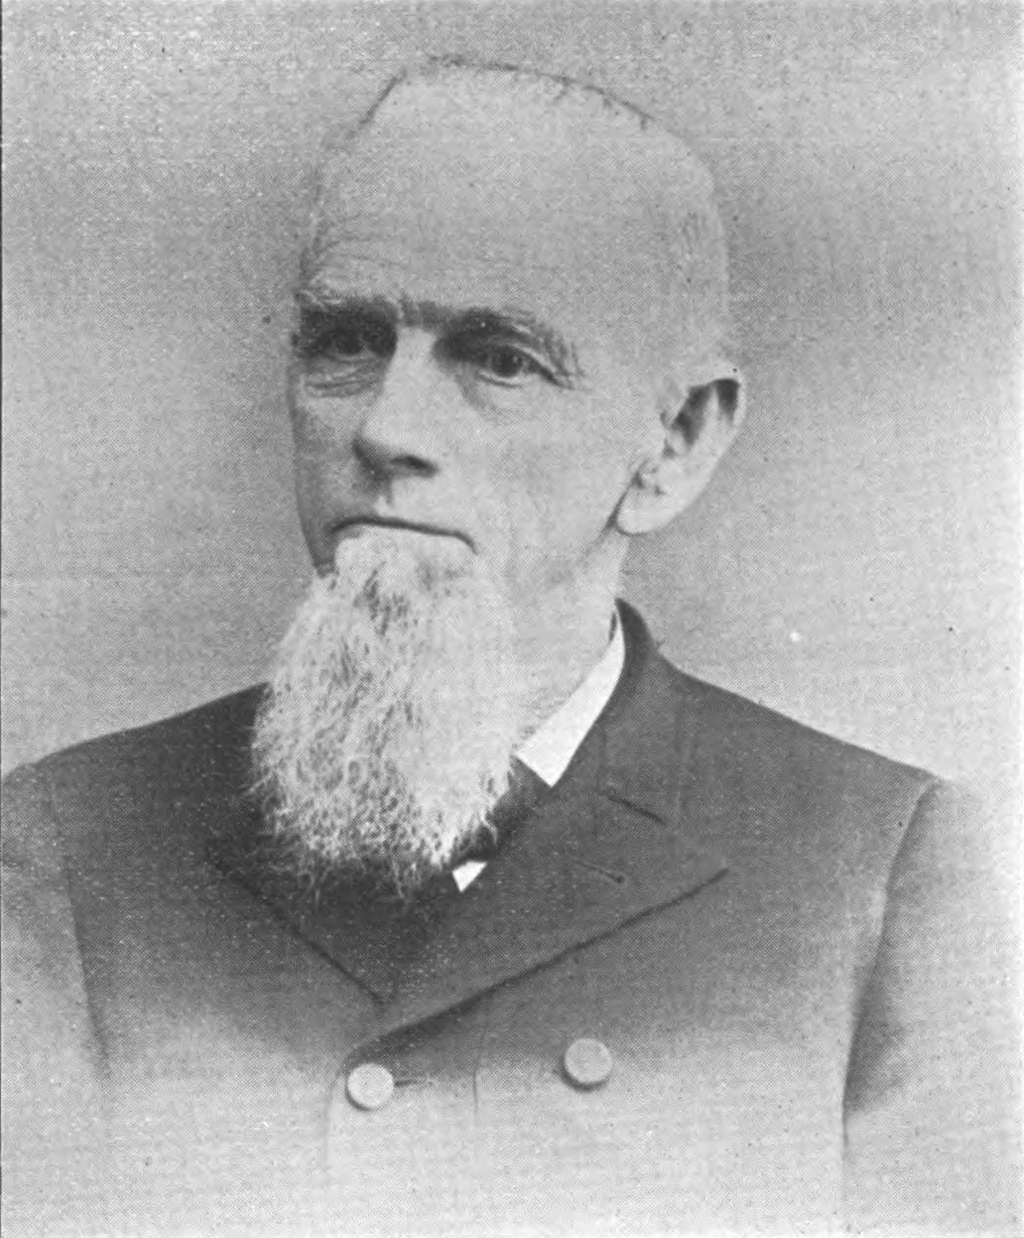 Rev. Benjamin Y. Siegfried. From Proceedings of the Seventy-Sixth Anniversary of the Ohio Baptist Convention (Columbus, Ohio: Press of Myers Bros., 1901), p. 33.